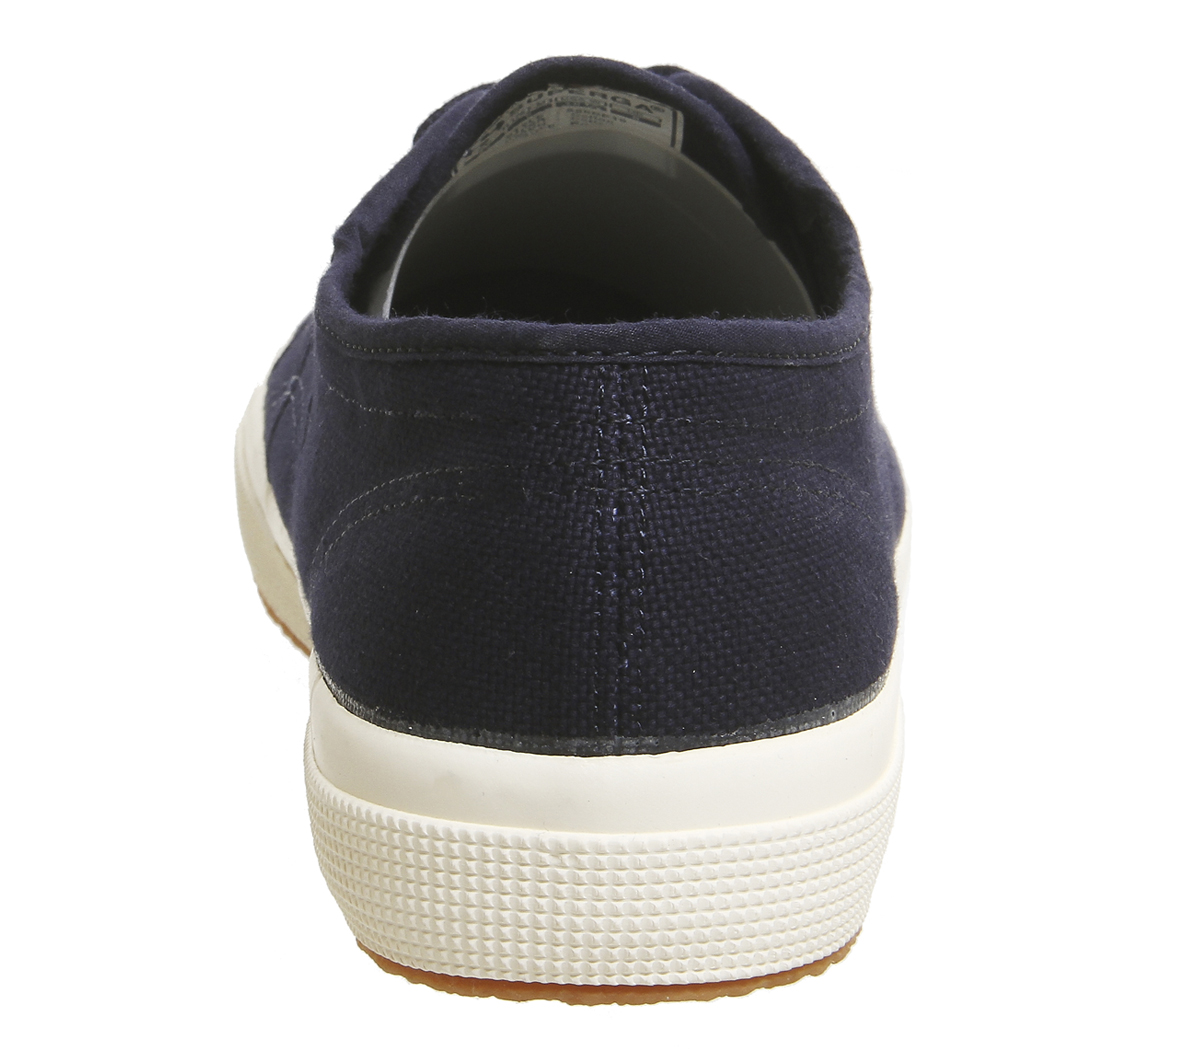 Damenschuhe Superga 2390 Trainers NAVY Trainers Schuhes